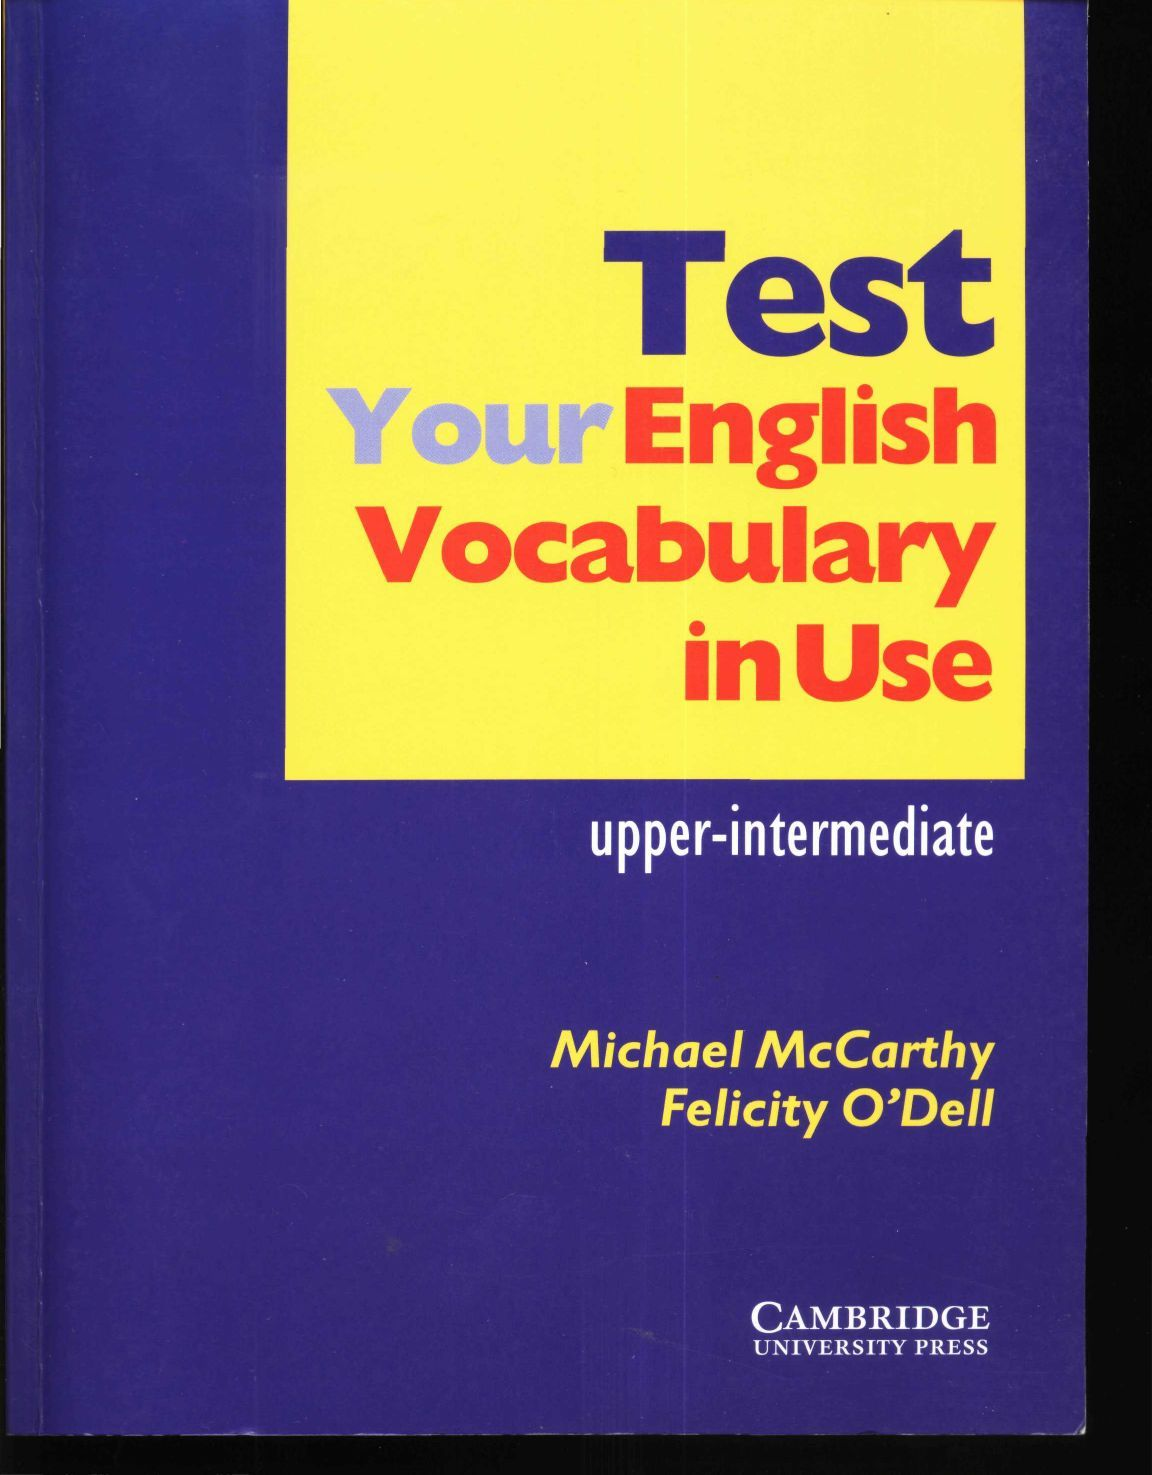 Libros Listening Ingles Test Your English Vocabulary In Use Upper Intermediate